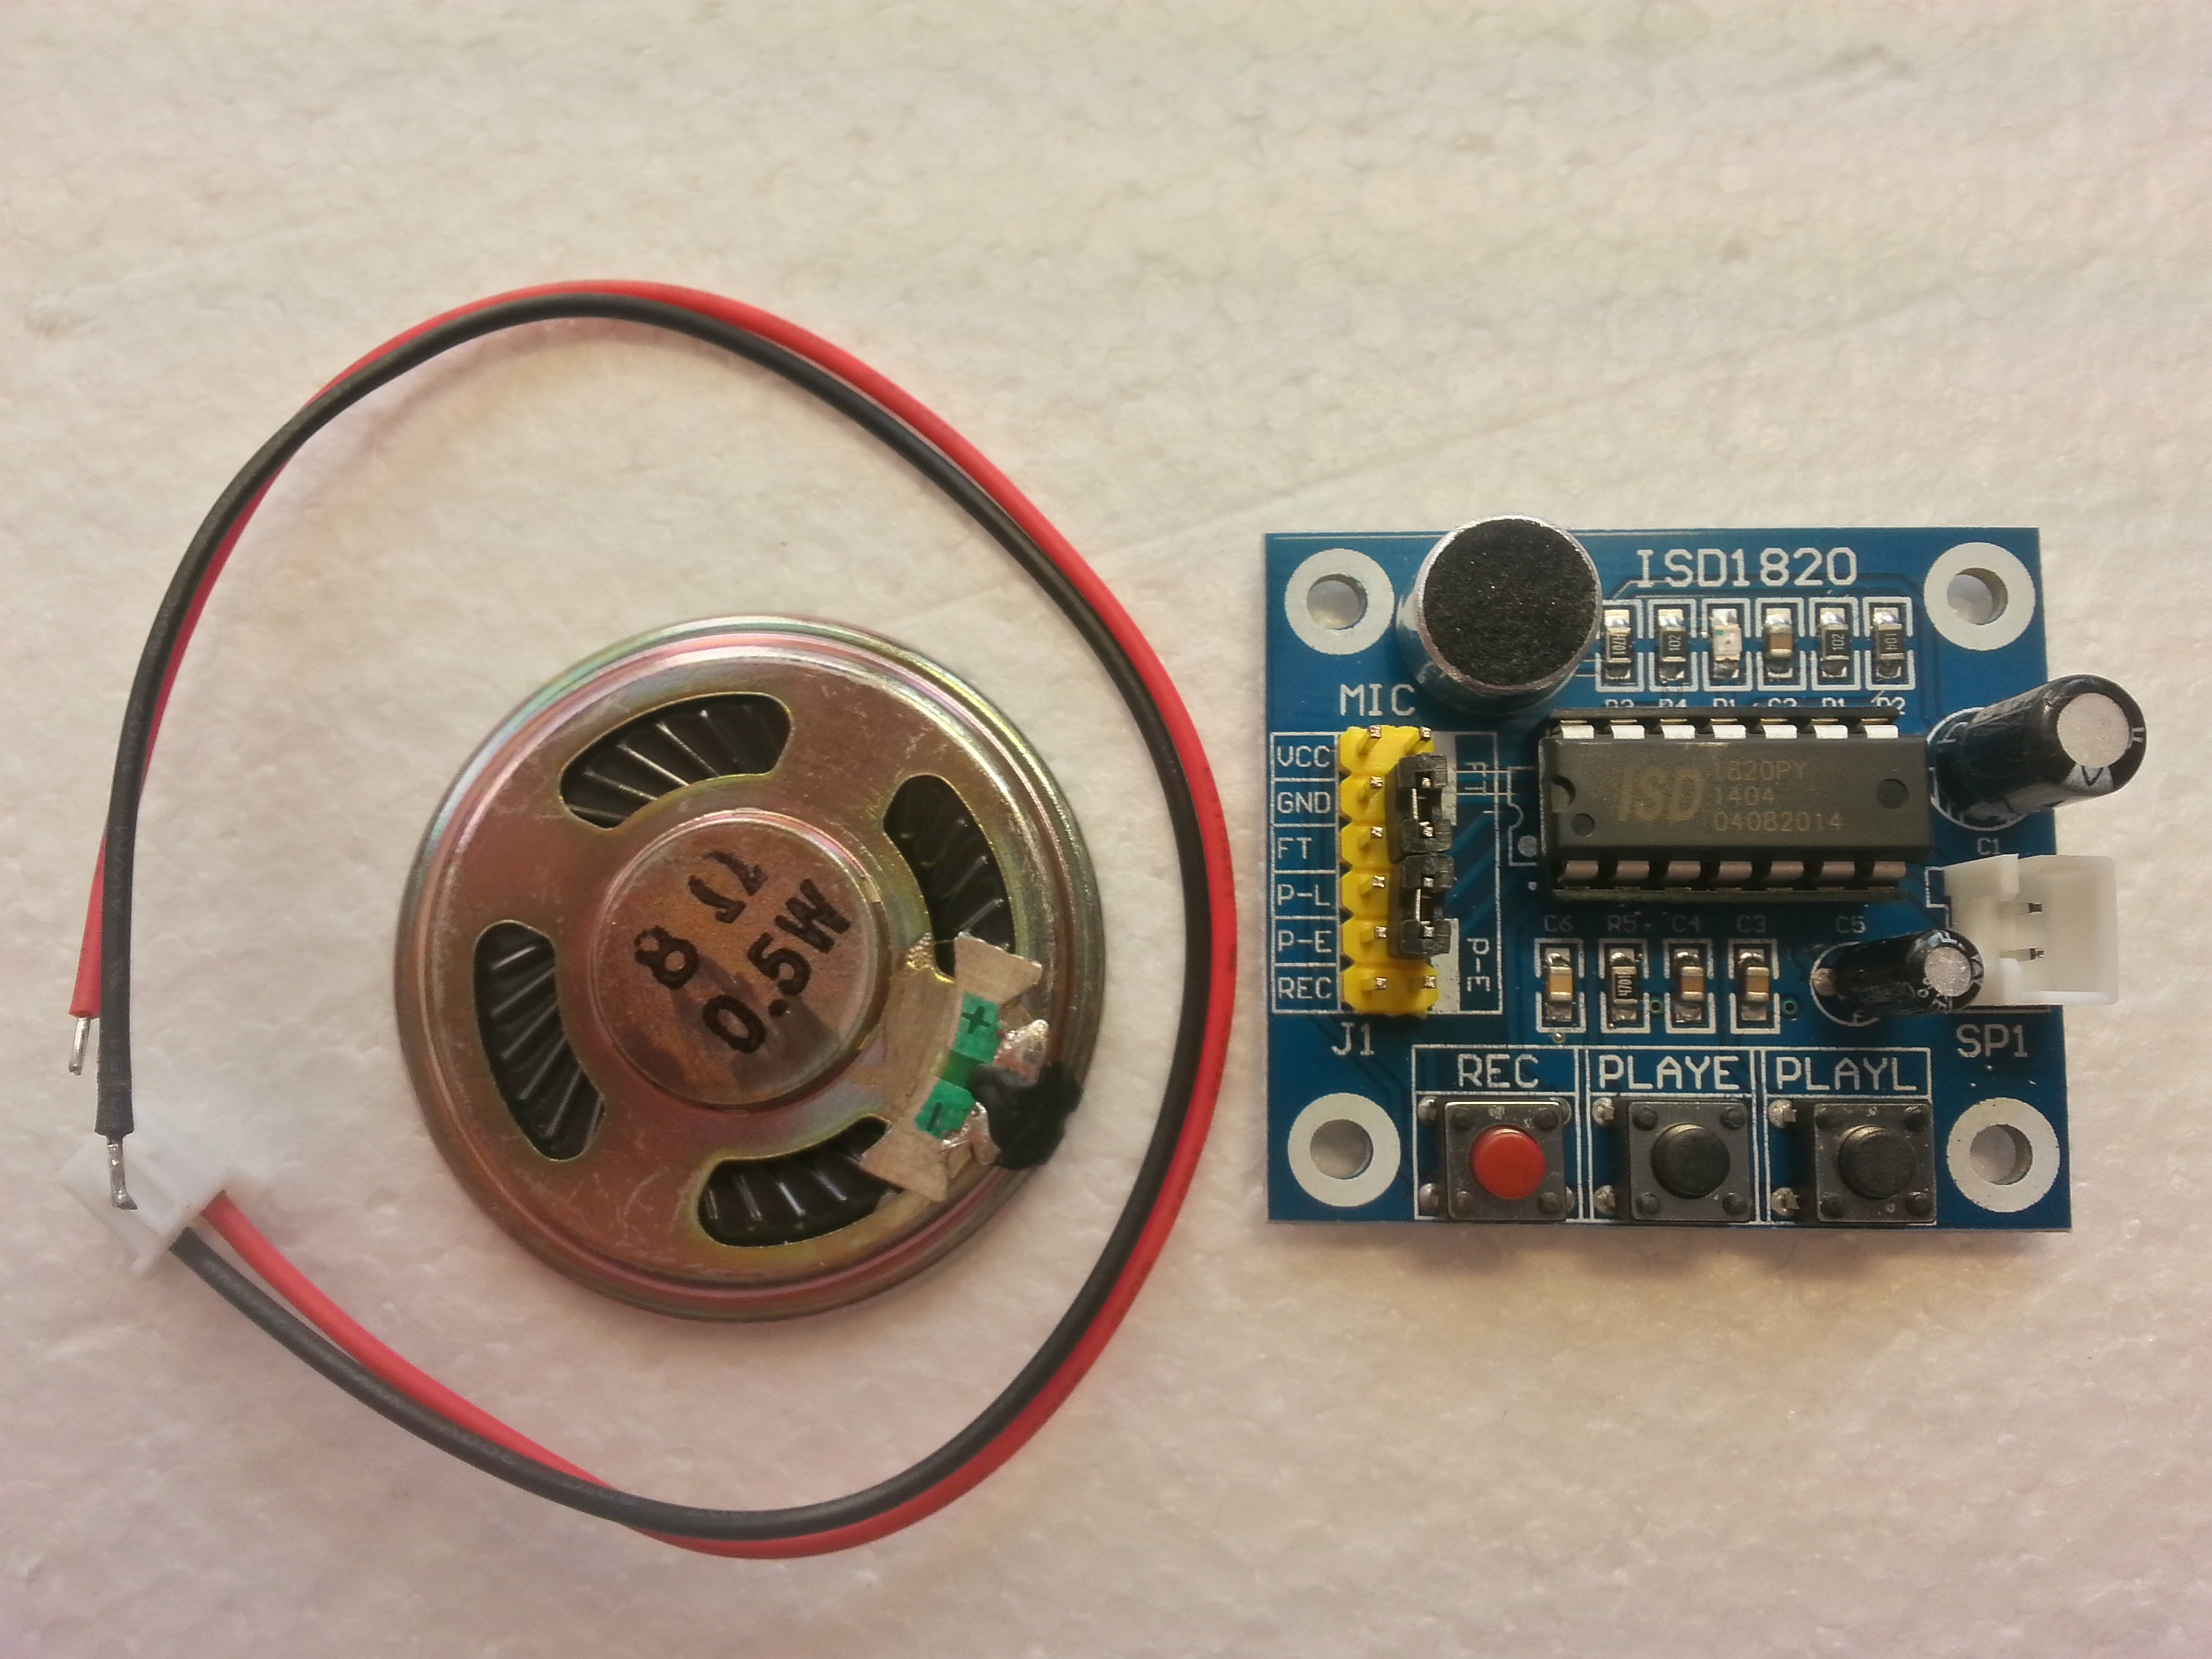 Isd1820 Sound Voice Recording Playback Module With Mic Audio Recorder Circuit Record Chiosz Robots